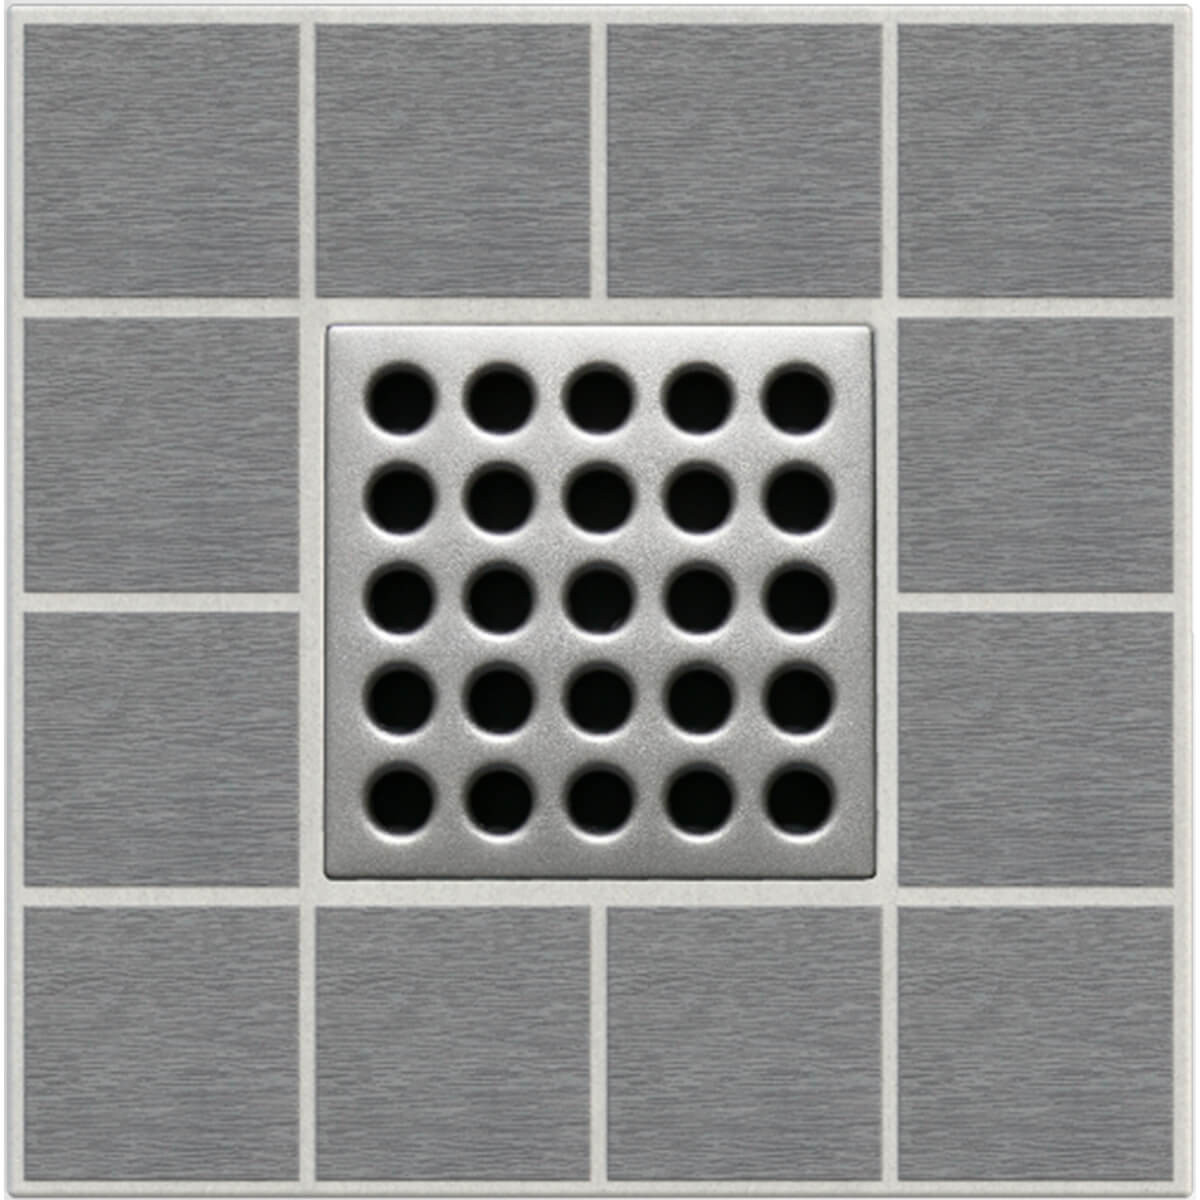 Satin Nickel Ebbe Grates For Shower Drains E4410